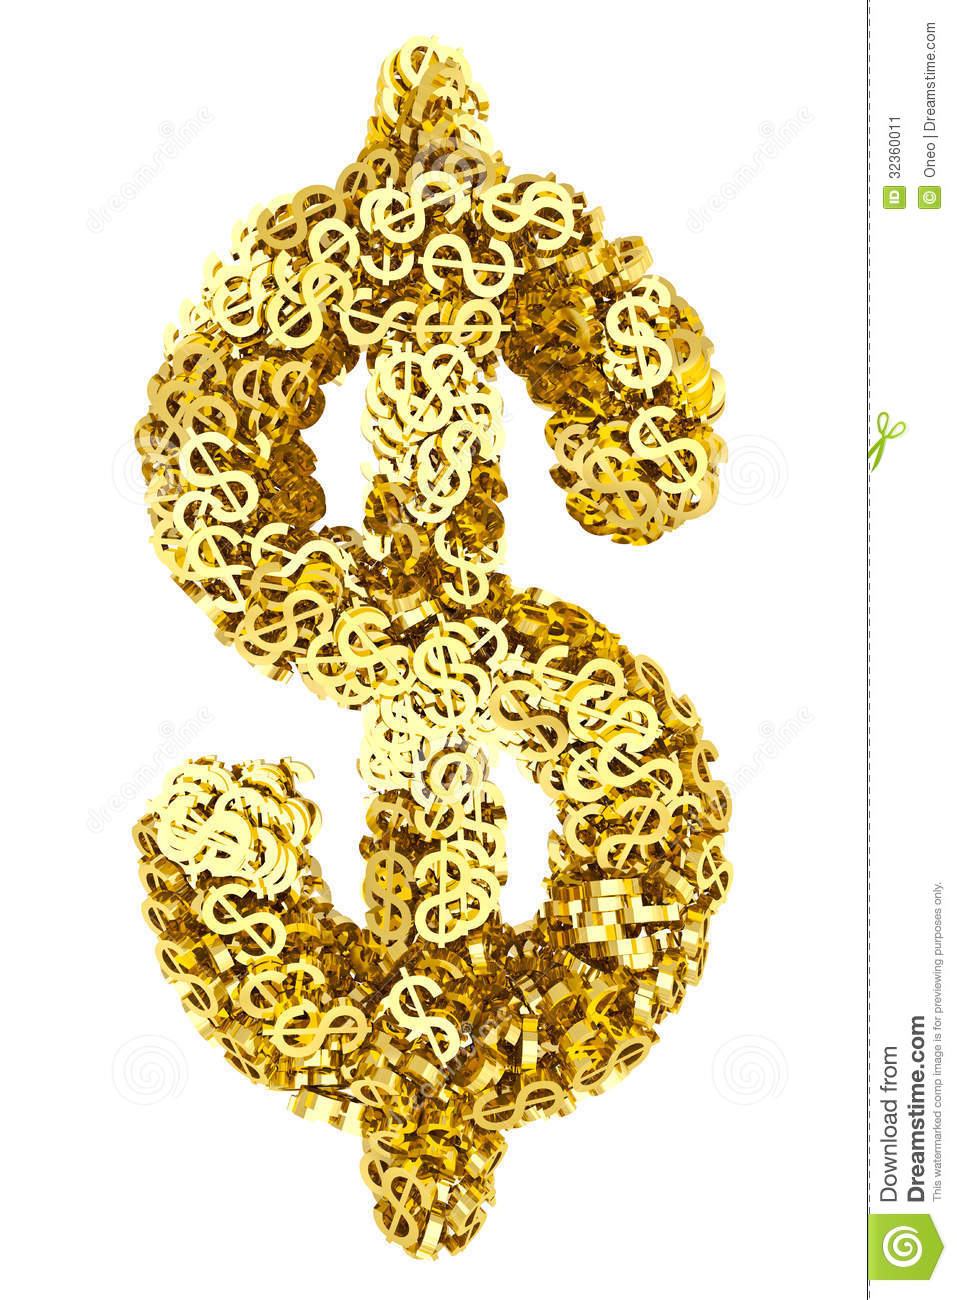 Big Dollar Sign Composed Of Many Golden Small Dollar Signs ...